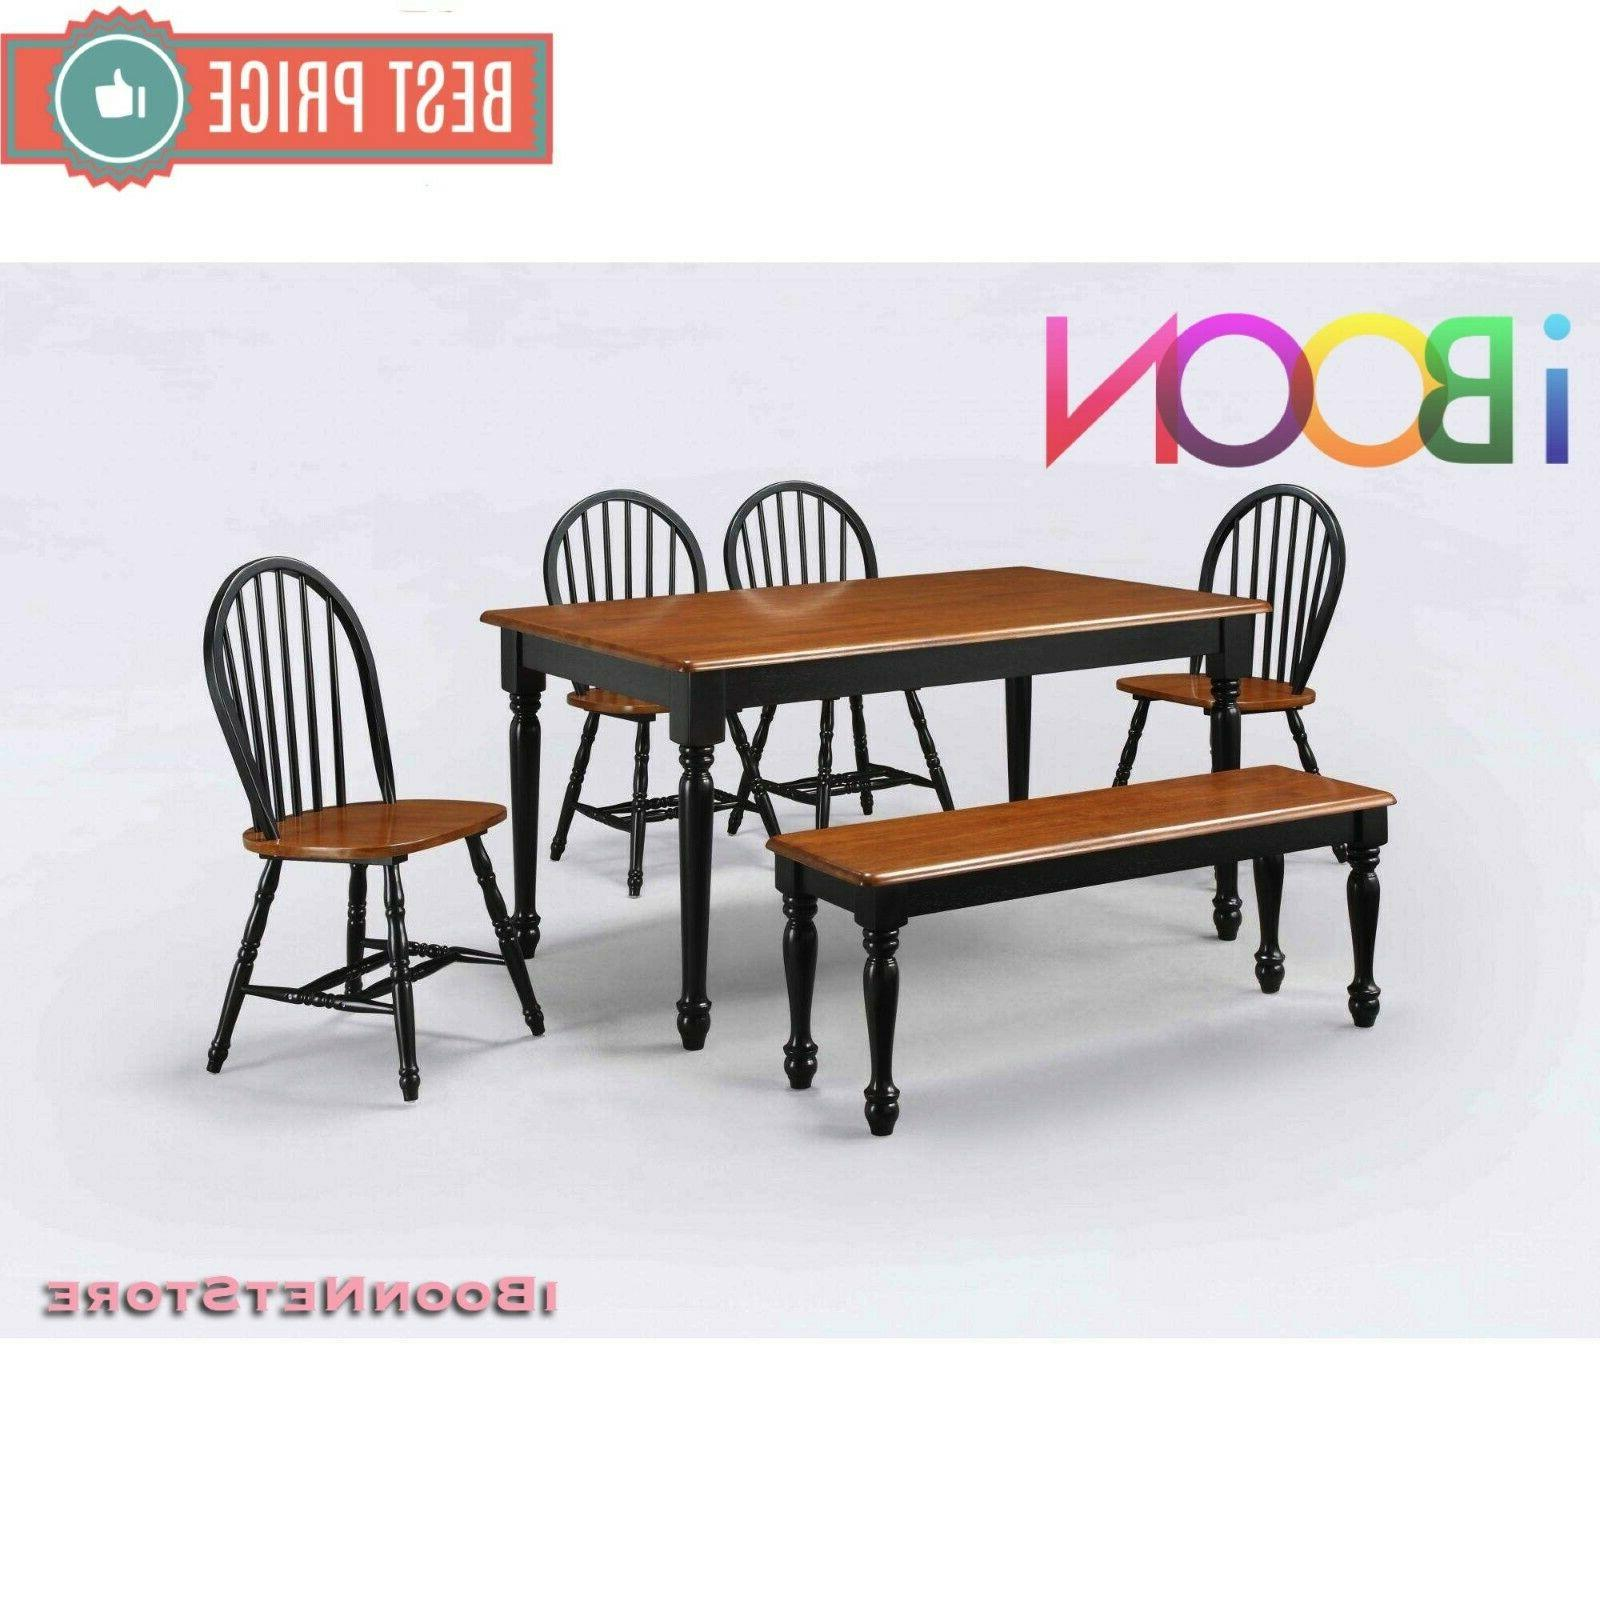 Wood Seat Room Black Oak Color Seat